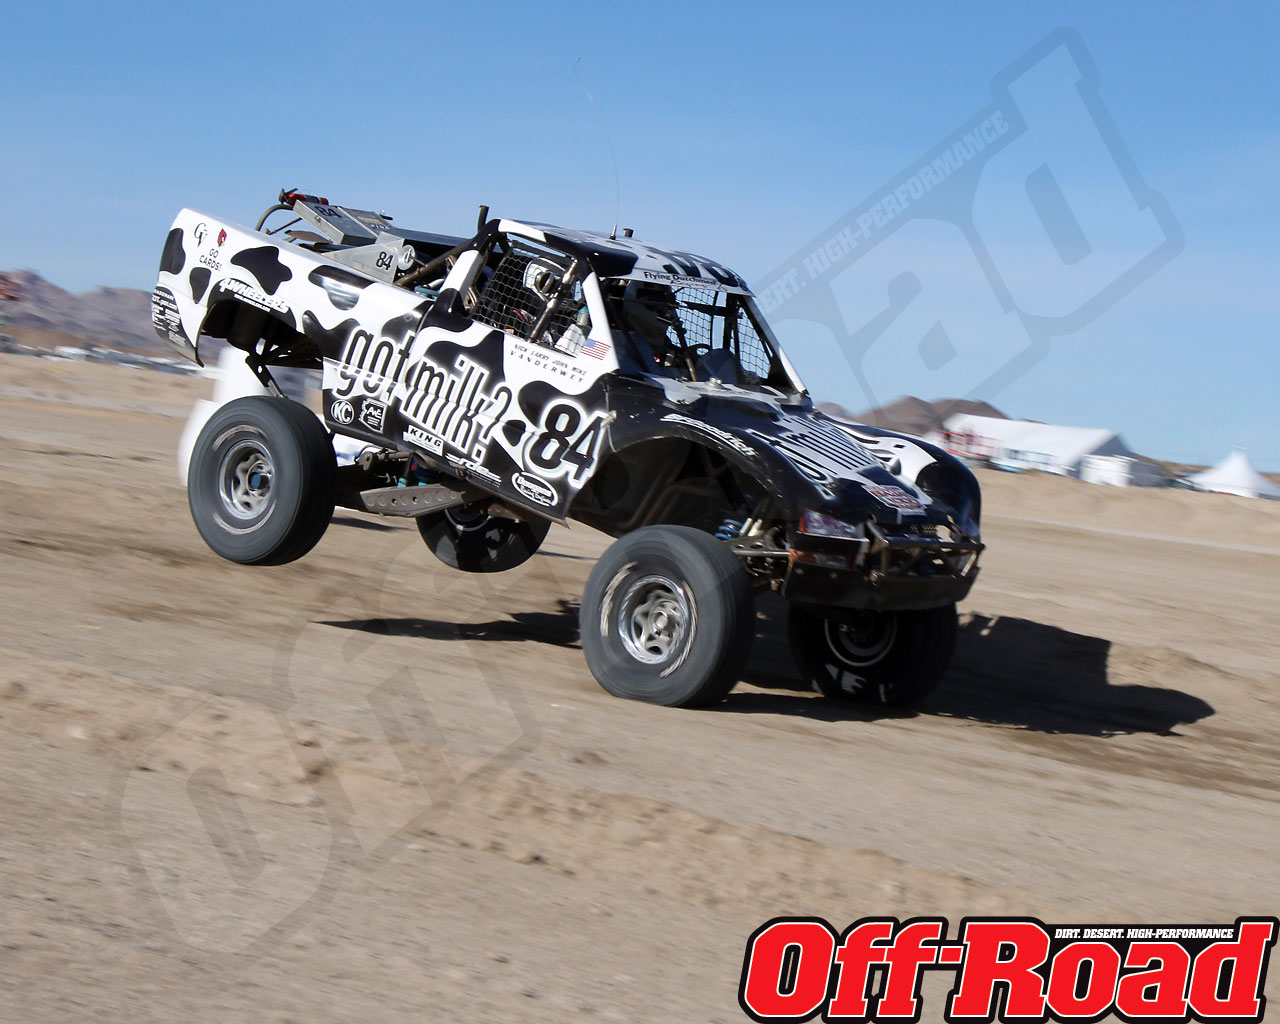 1002or 0585 o+2010 score laughlin desert challenge+trophy truck